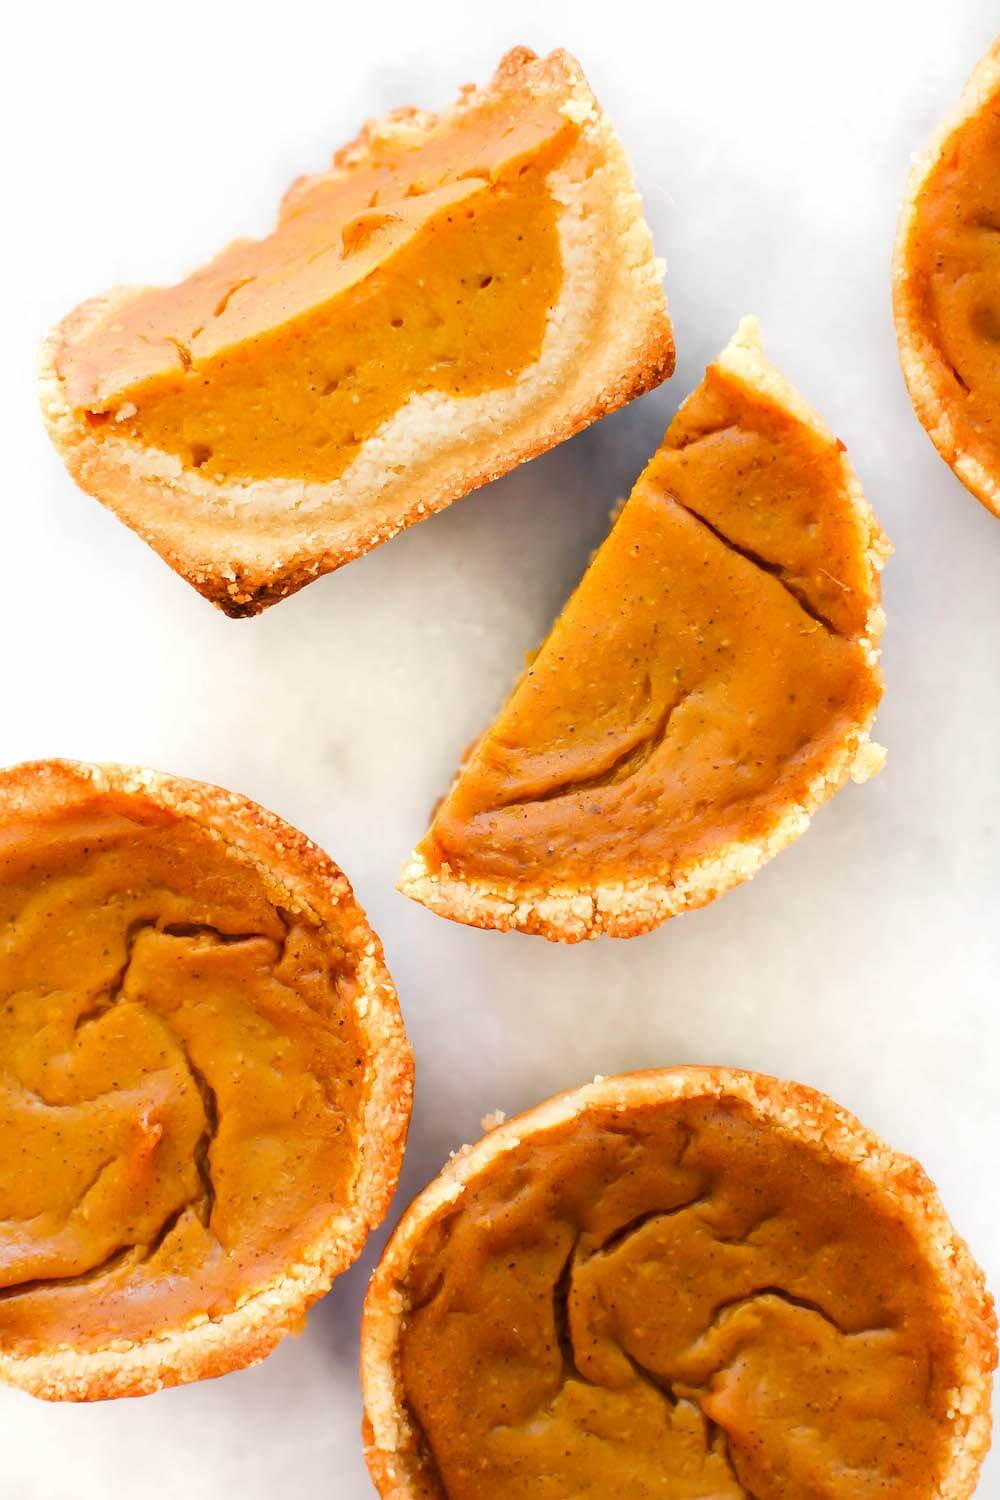 Vegan Grain-free Pumpkin Pie Cups (Vegan Pumpkin Recipes)